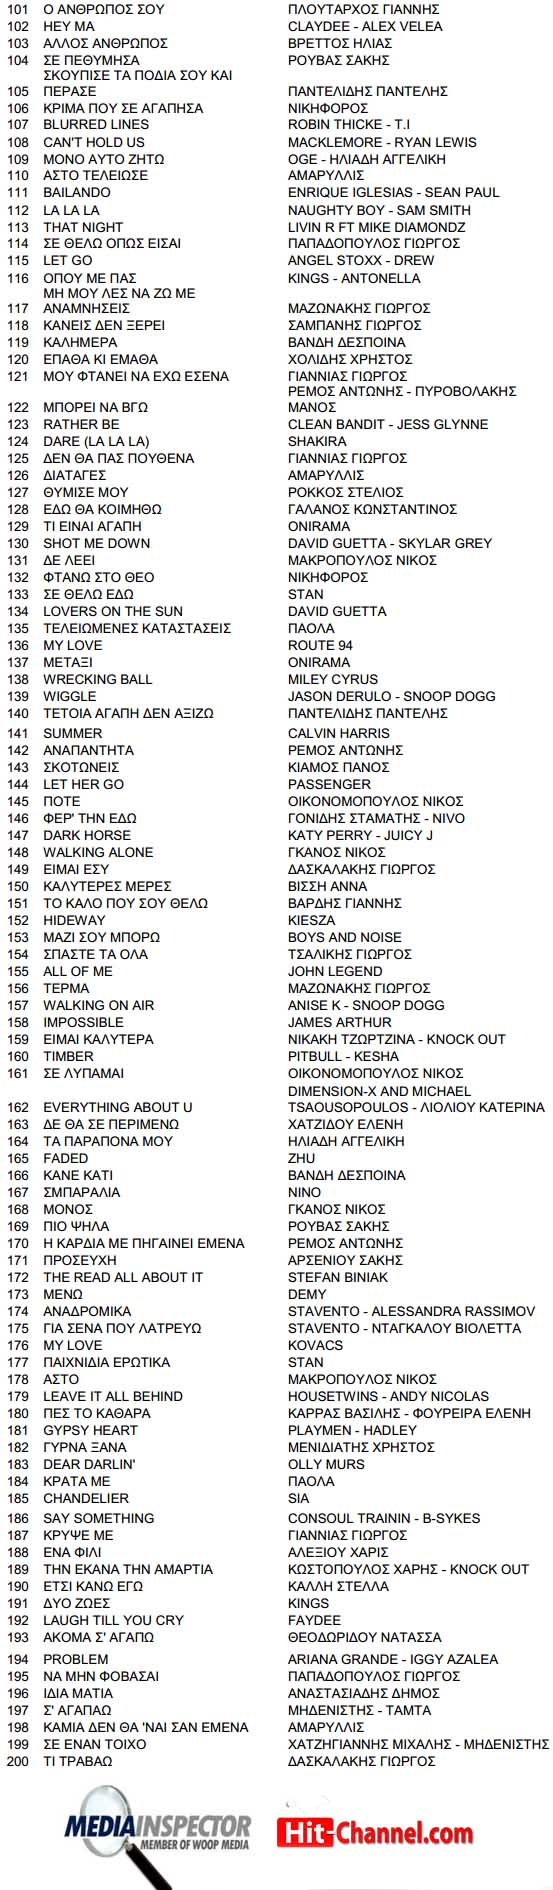 Greek Radio Top 200 Airplay Chart 2014 - MediaInspector (101-200)